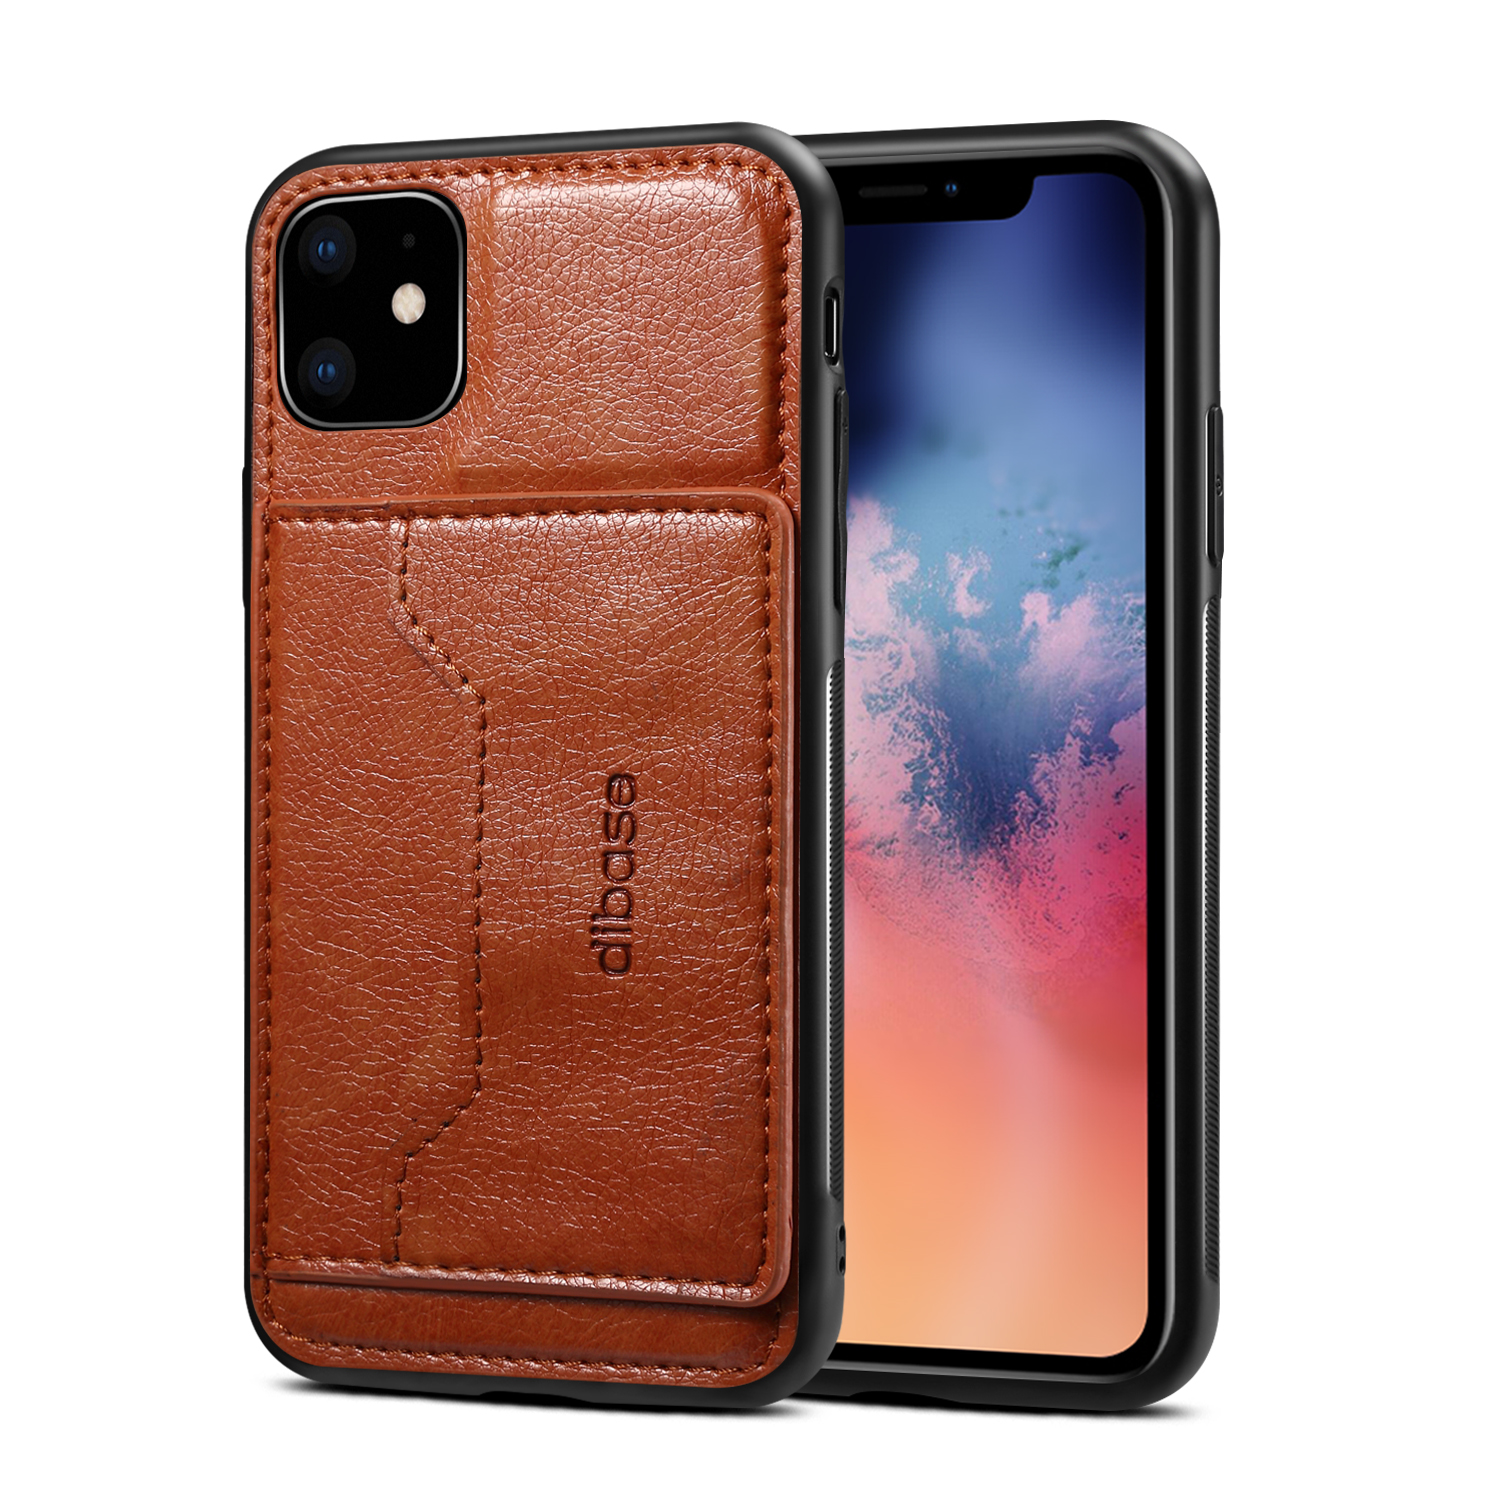 For iPhone 11/11 Pro/11 Pro Max Cellphone Smart Shell 2-in-1 Textured PU Leather Shock-Absorption Anti-Fall Card Holder Stand Function Phone Cover brown